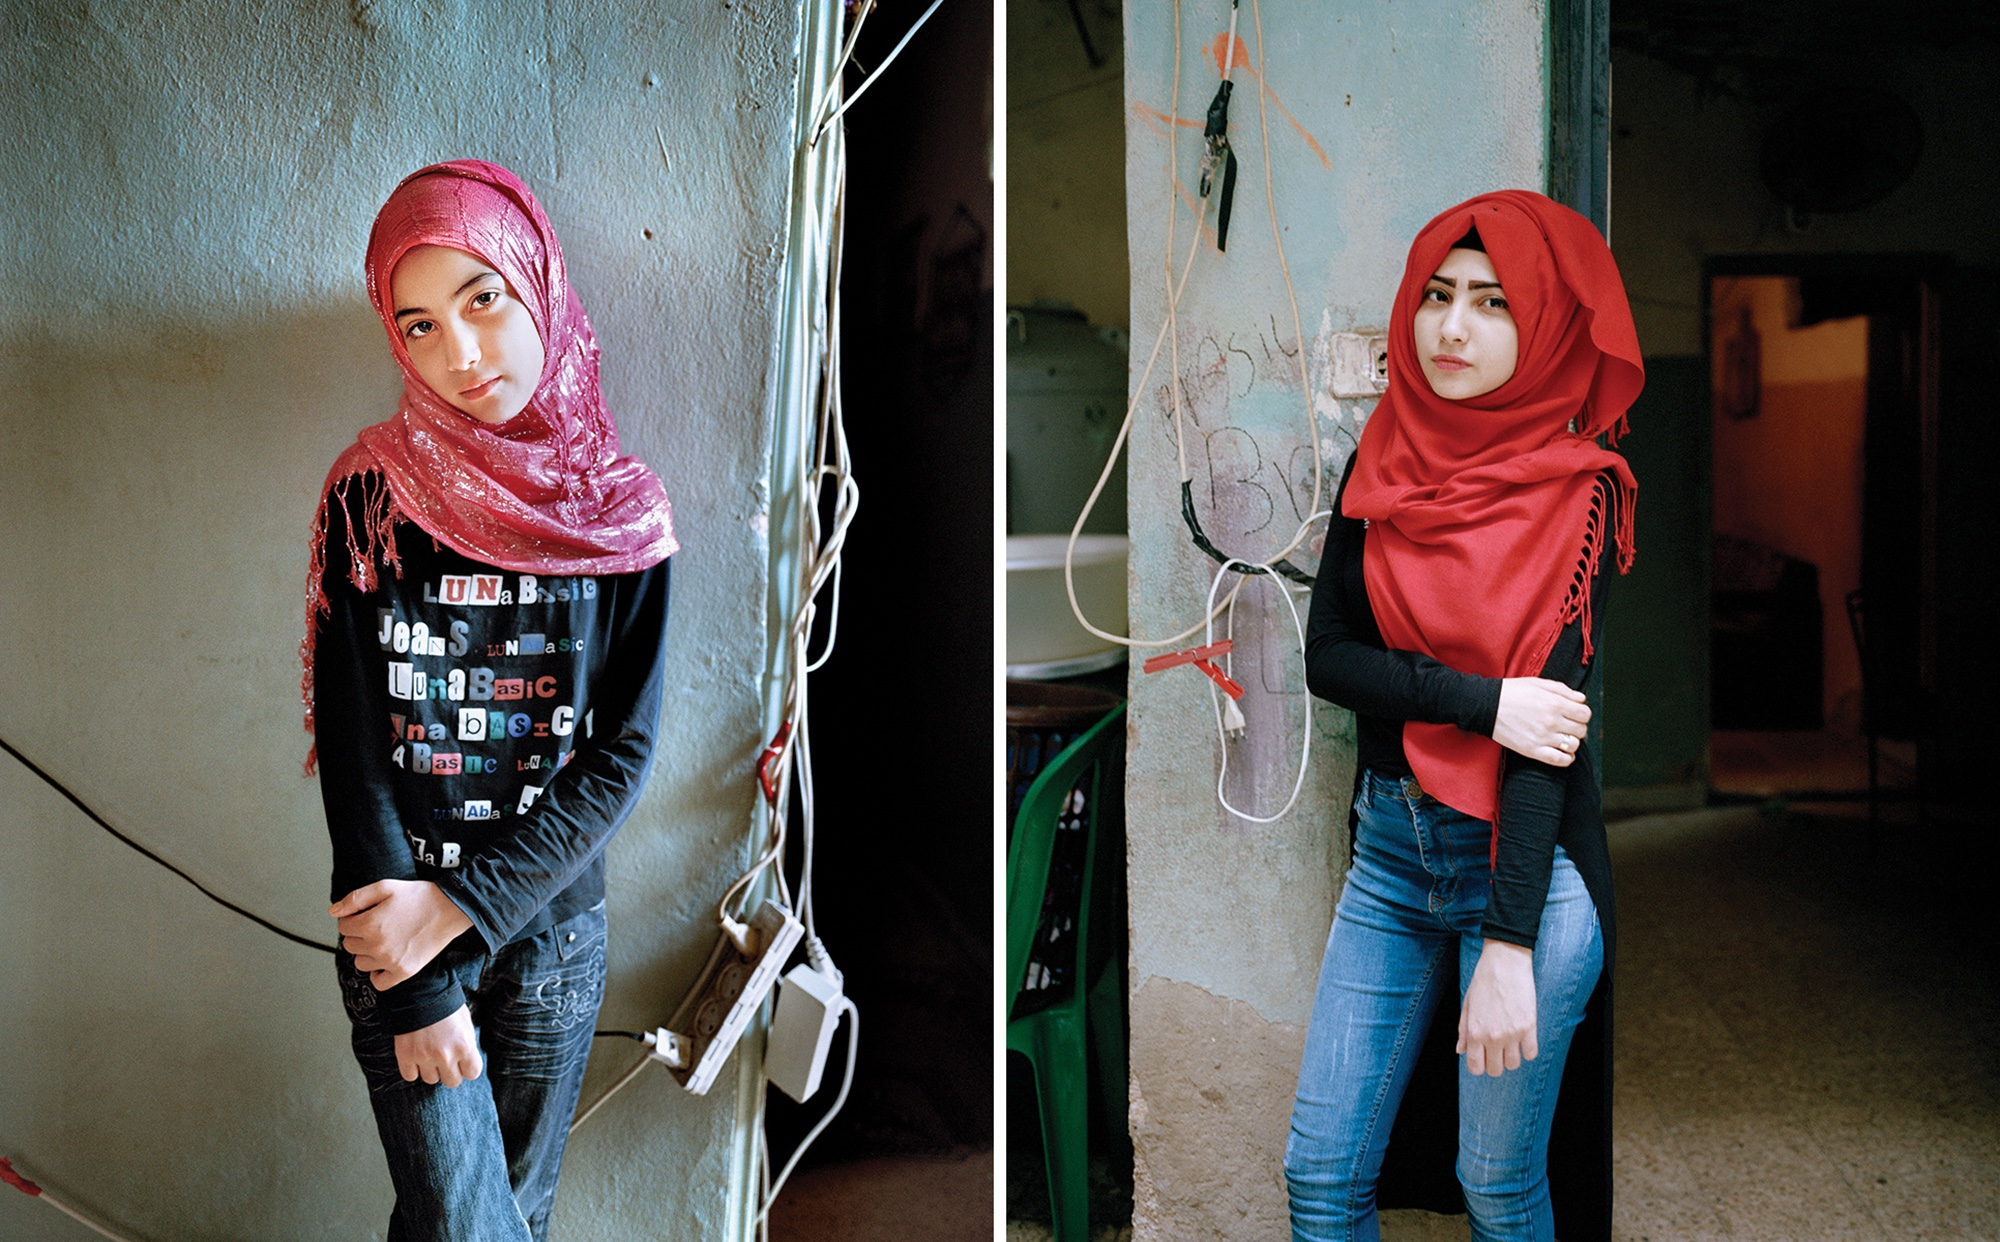 Samira at 12 and at 17, Bourj El Barajneh Refugee Camp, Beirut Lebanon, 2011, 2016